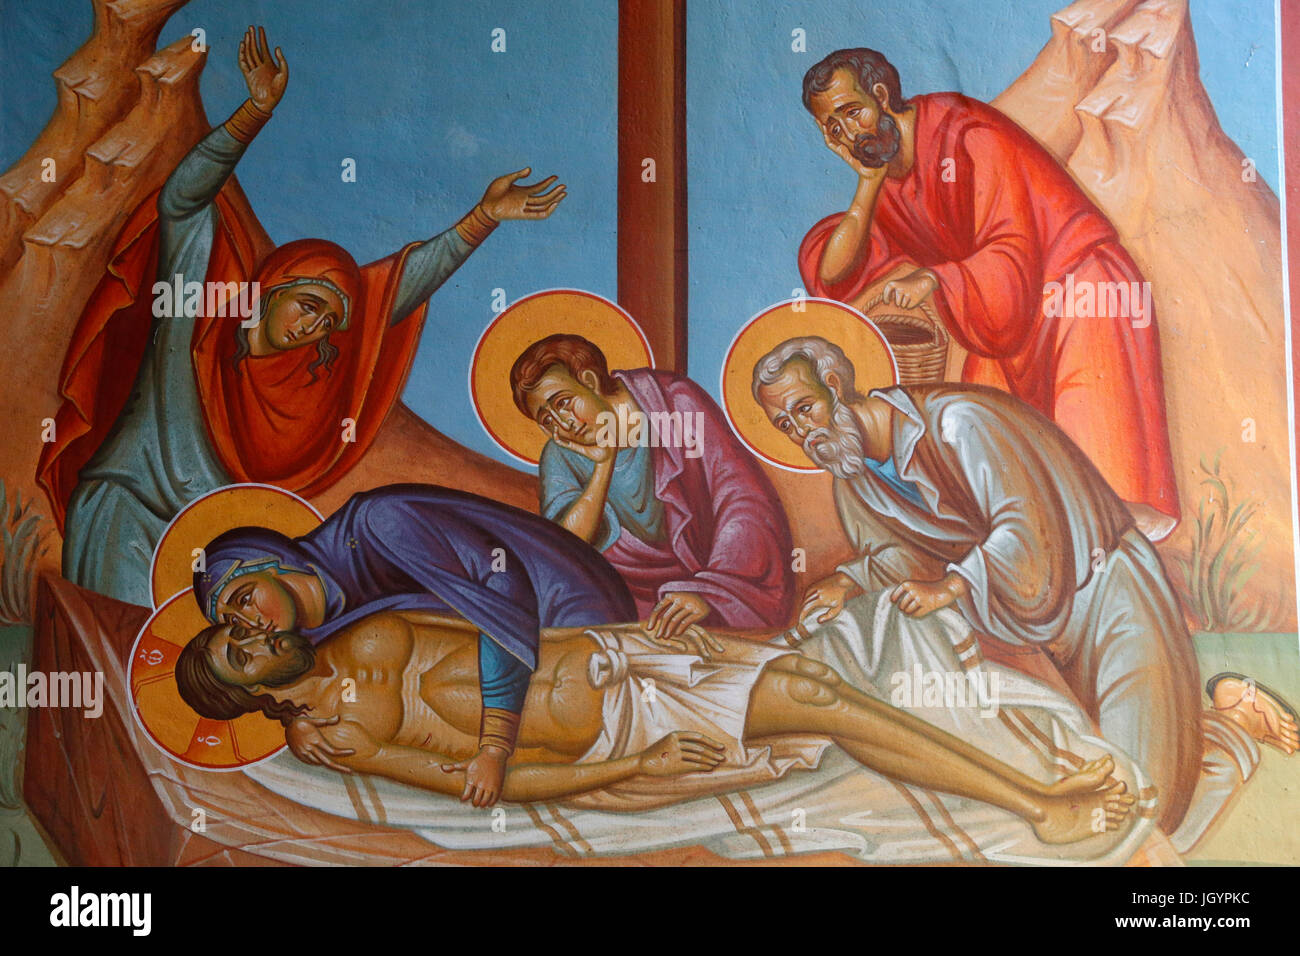 Fresco in Holy cross church, Pedoulas. Jesus Christ's entombment. Cyprus. - Stock Image